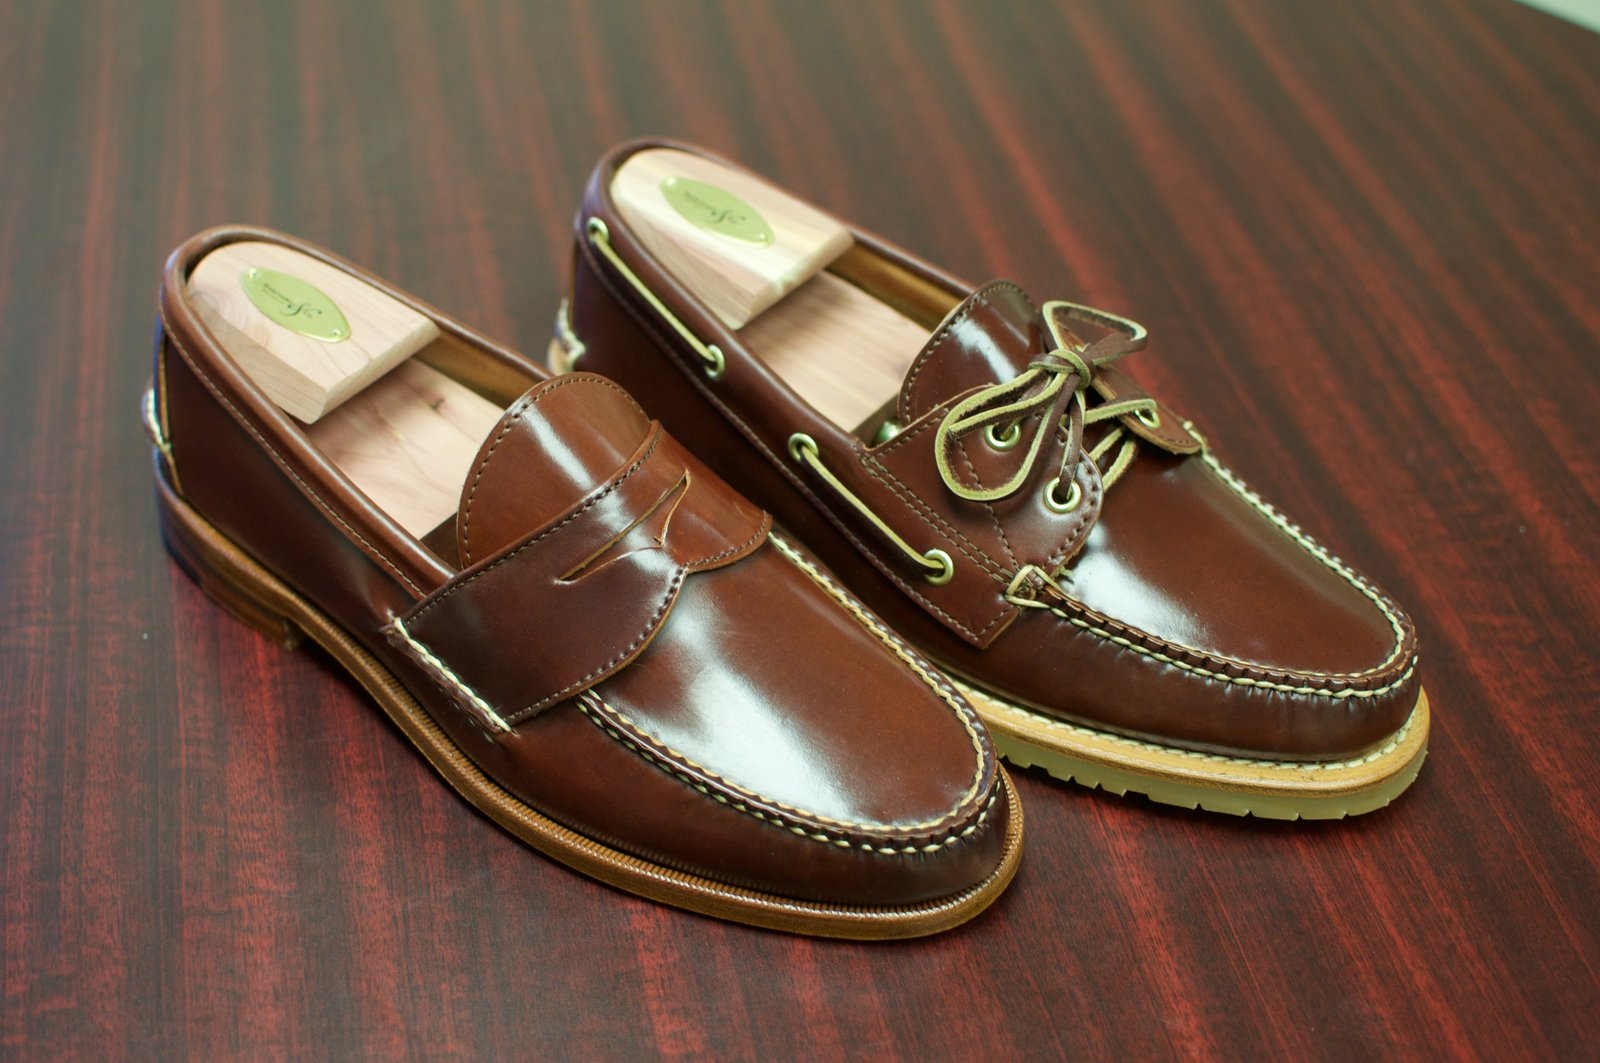 Rancourt Color #4 Shell Cordovan Loafers - 3.jpg